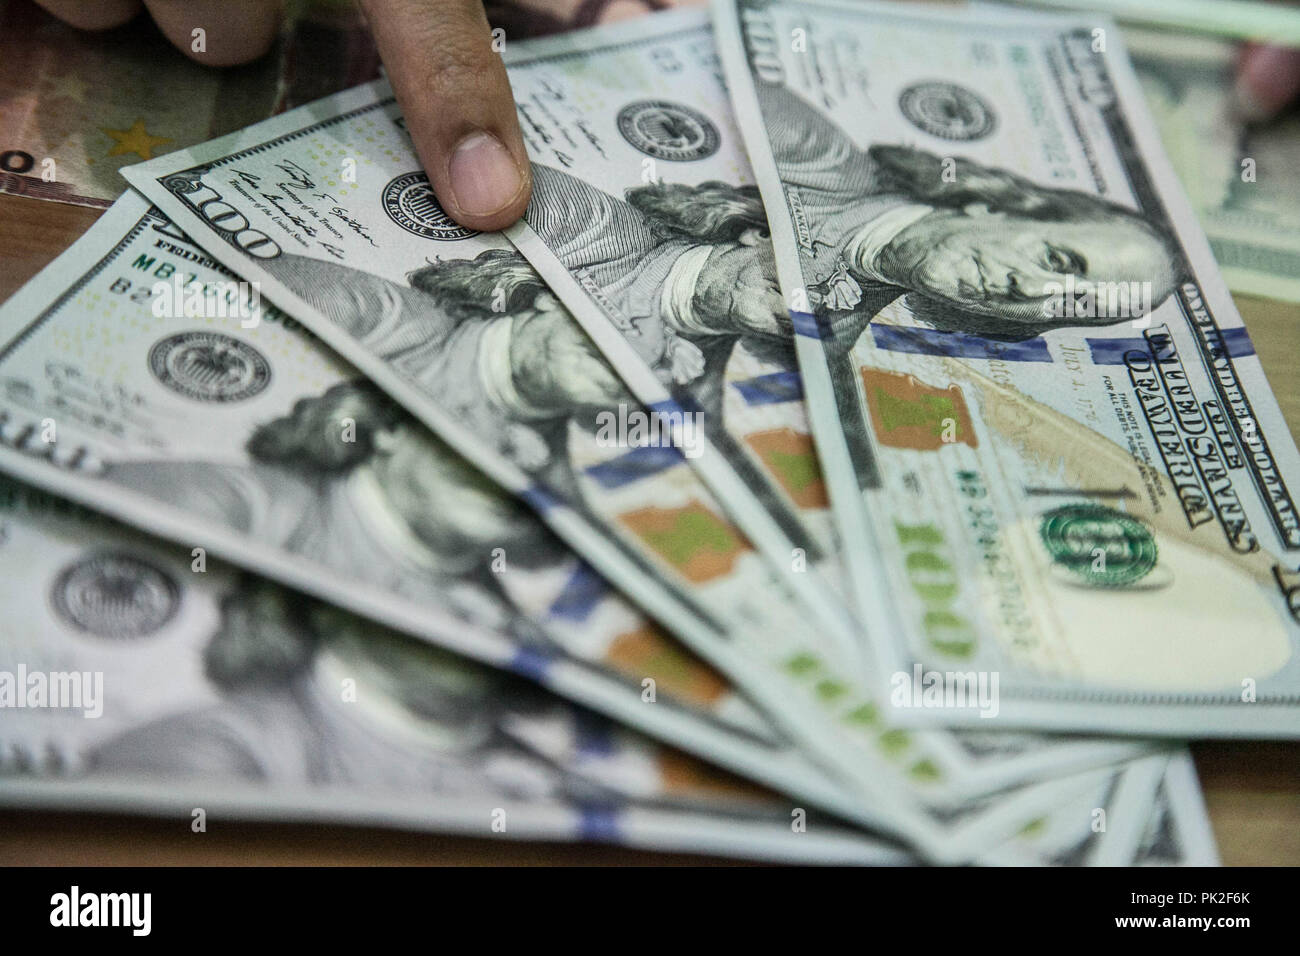 Medan, North Sumatra, Indonesia. 10th Sep, 2018. An employee shows U.S. one-hundred dollar banknotes sits on a counter at a currency exchange store in Medan on Sept 10, 2018, Indonesia. As Aug. 15's policy decision approaches, Bank Indonesia finds itself under pressure to raise the benchmark rate again even after increasing it by a combined 100 basis points since mid-May to stem a slide in the currency, where estimates that the Rupiah exchange rate will stabilize in the range of 14,835 rupiah per US dollar on today. Credit: Ivan Damanik/ZUMA Wire/Alamy Live News Stock Photo